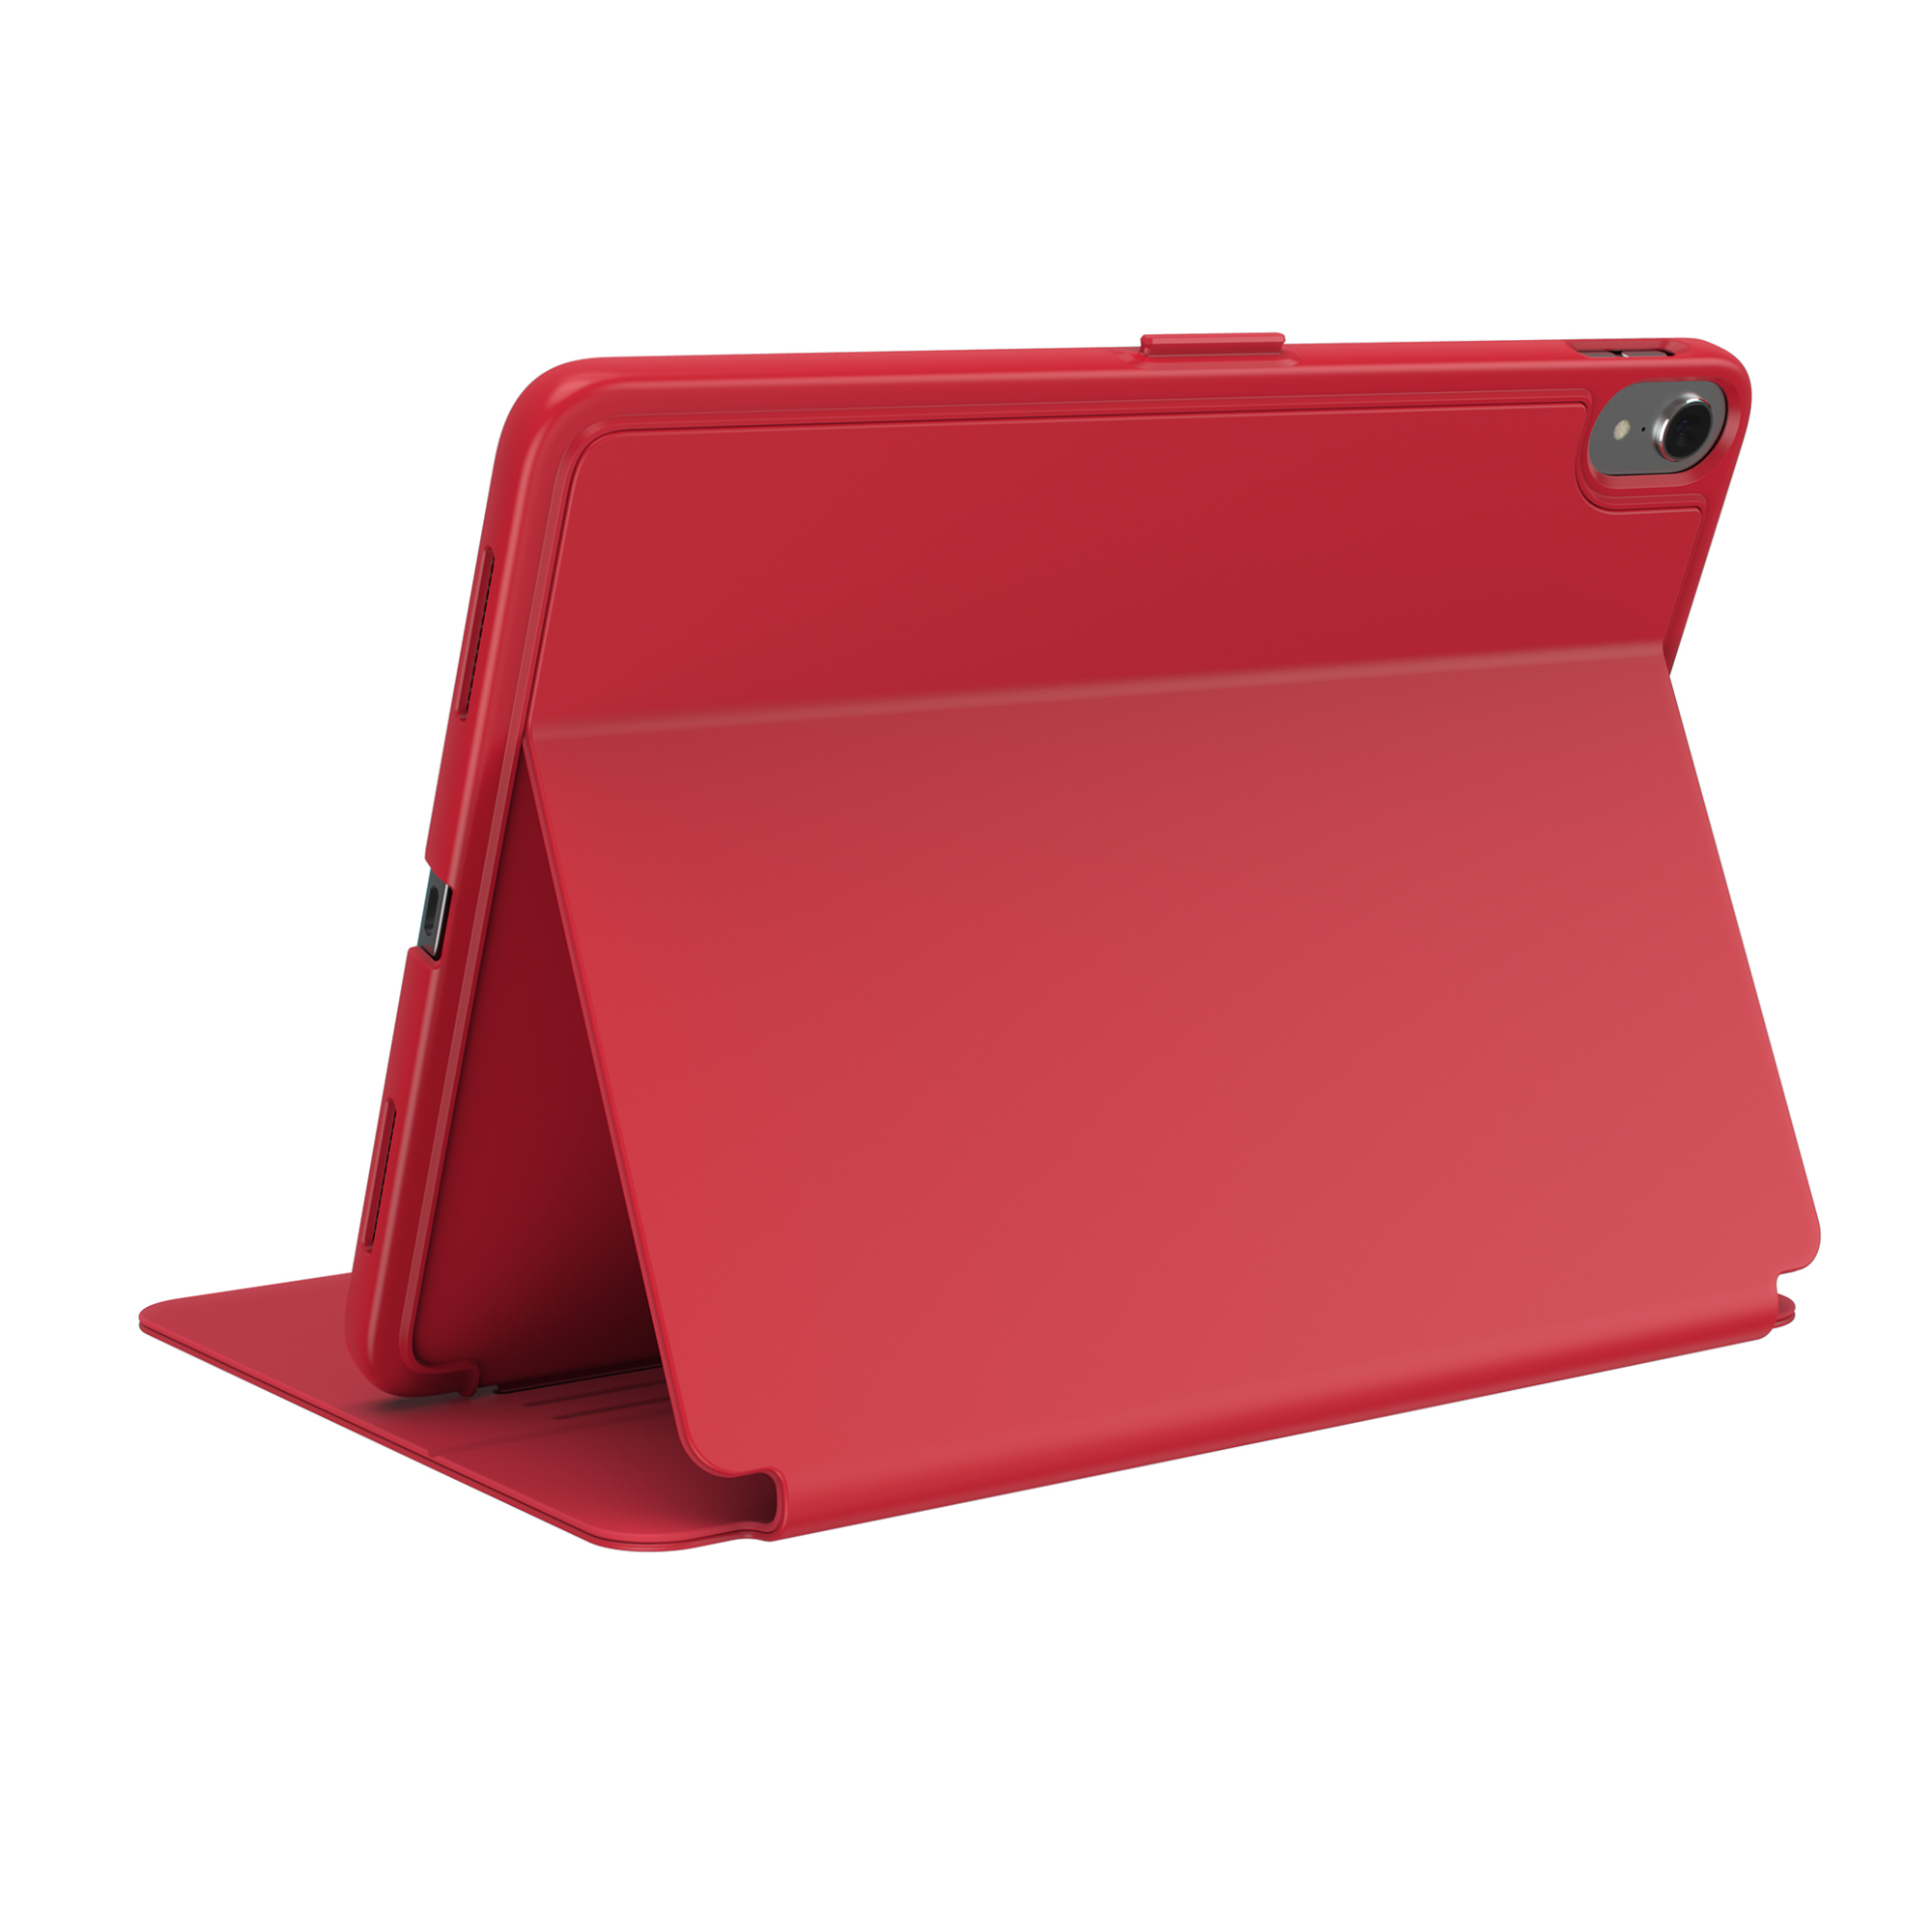 Compare prices for Balance Folio 11-inch iPad Pro Cases Heartrate Red/Heartrate Red